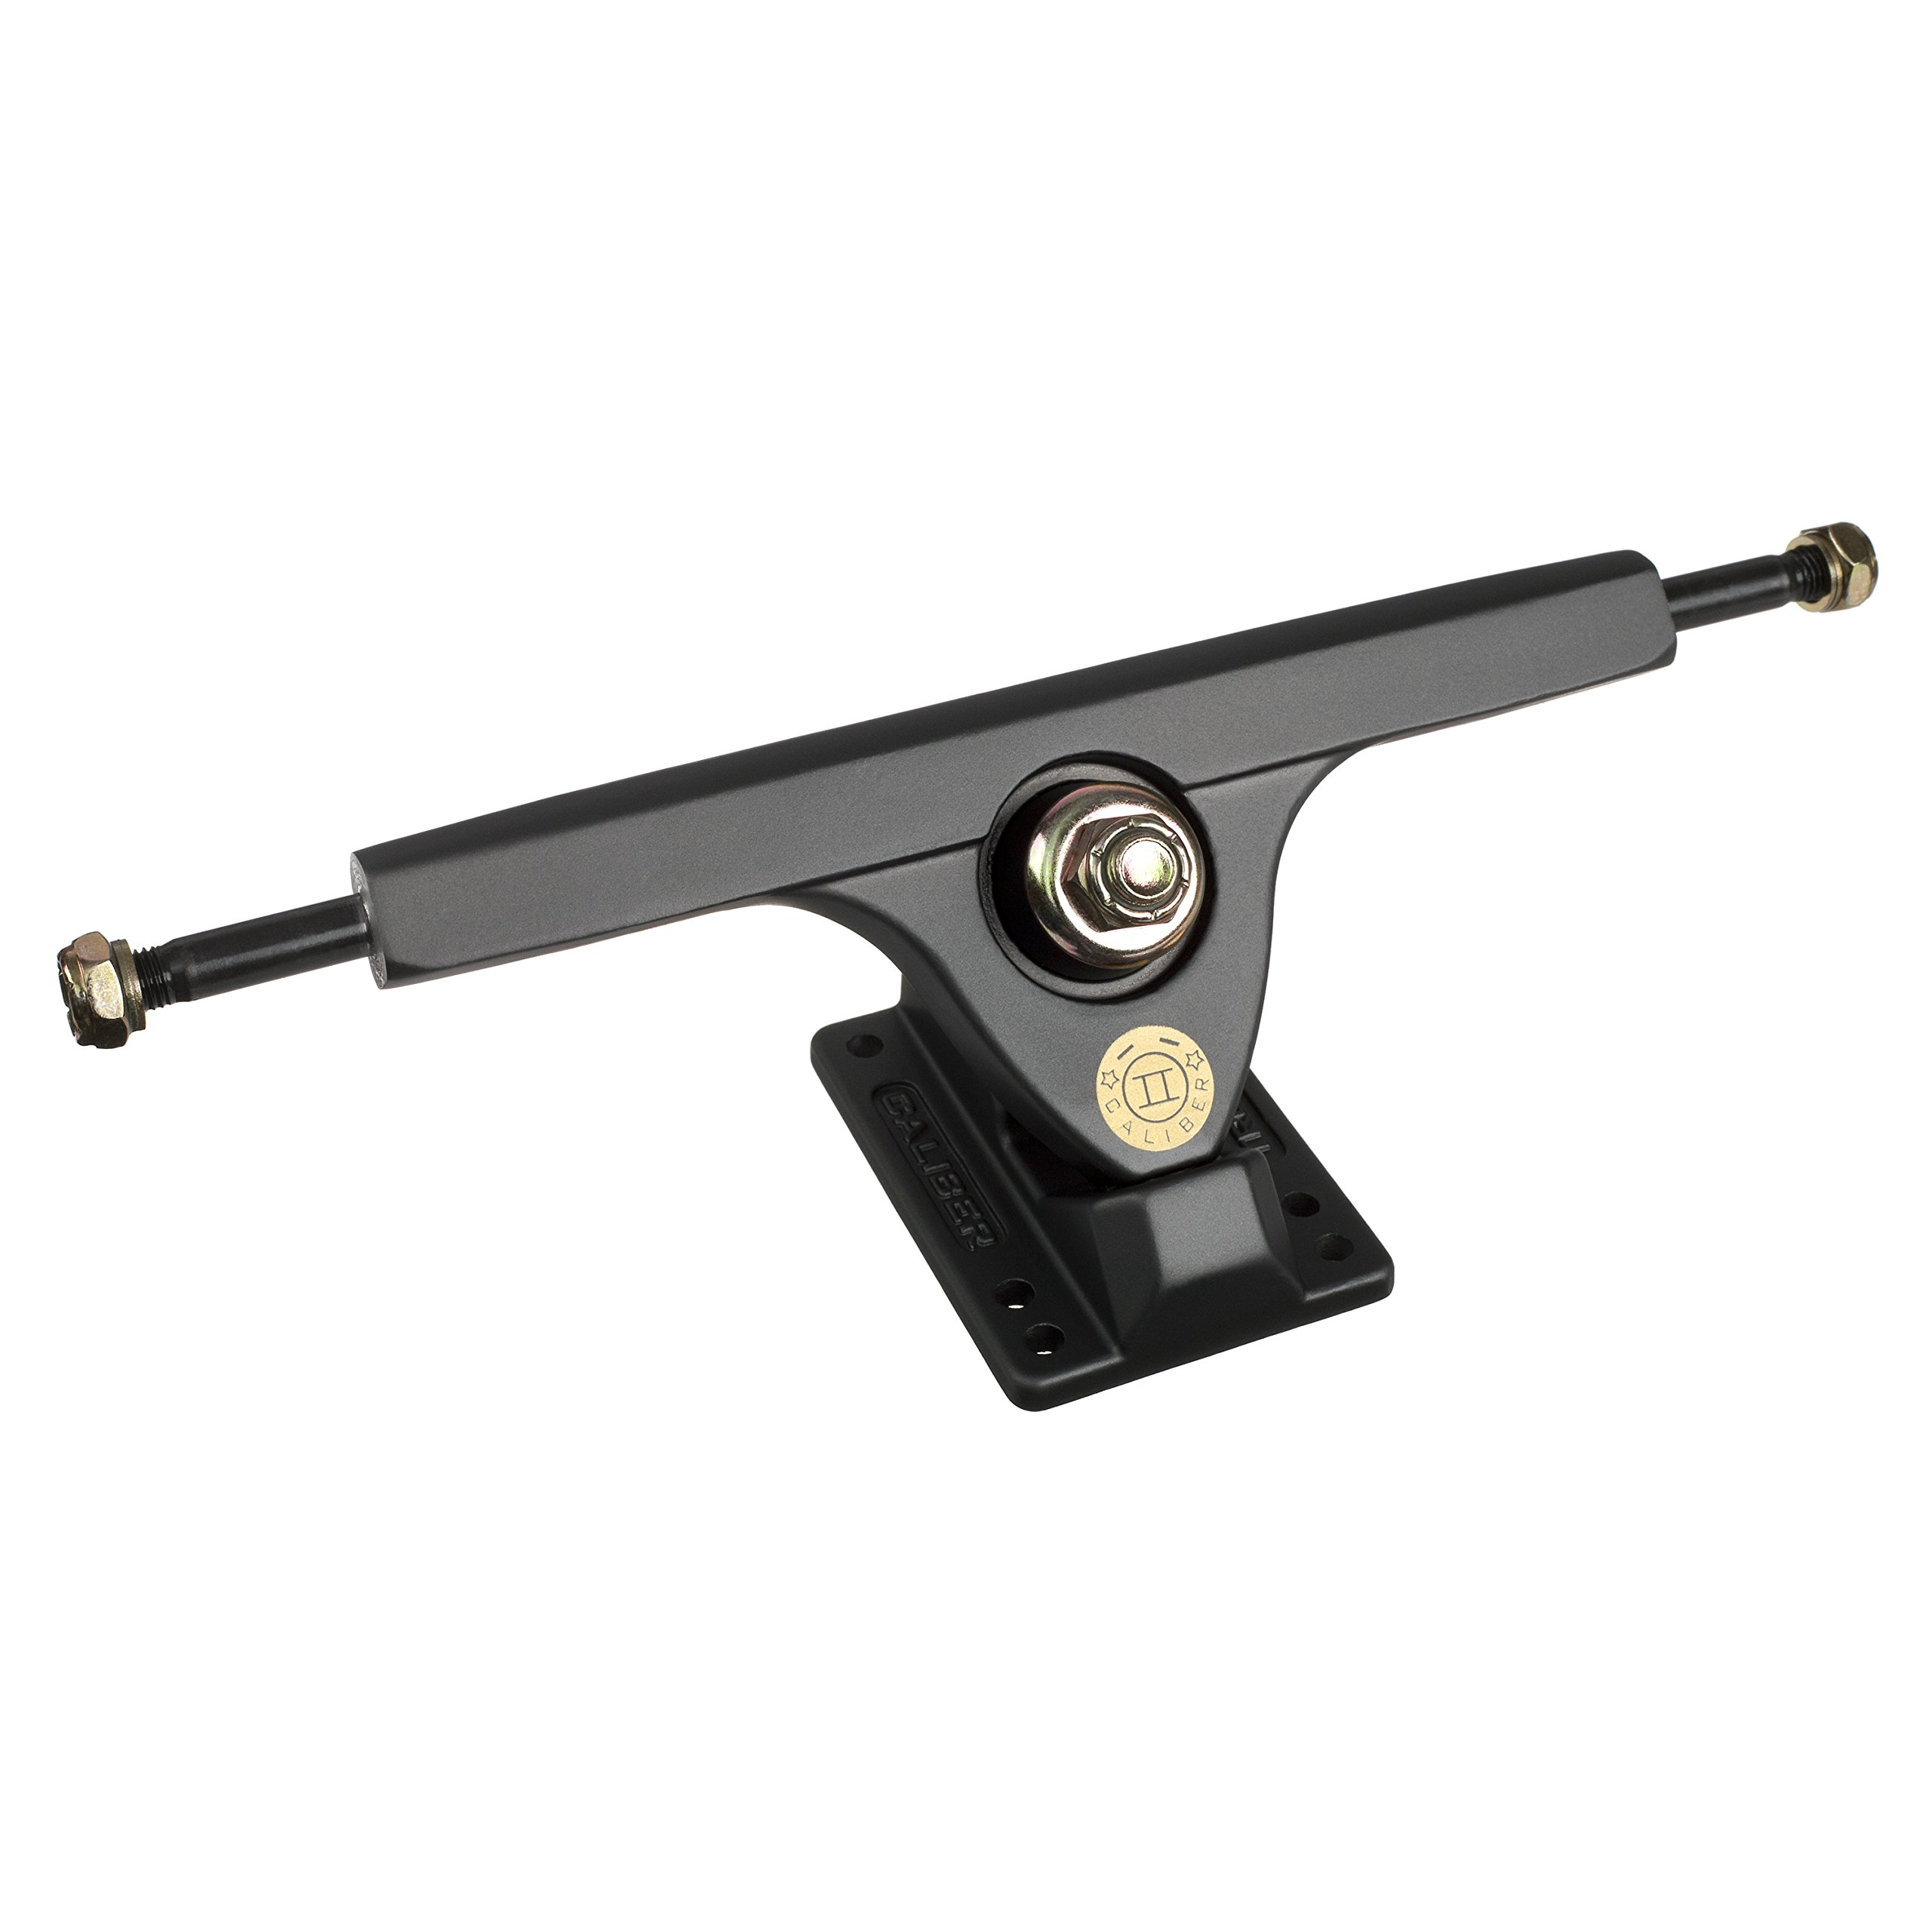 Caliber Trucks Cal II 50° RKP Longboard Trucks - set of two (Satin Smoke, w/o Bearings) by Caliber Truck Co.